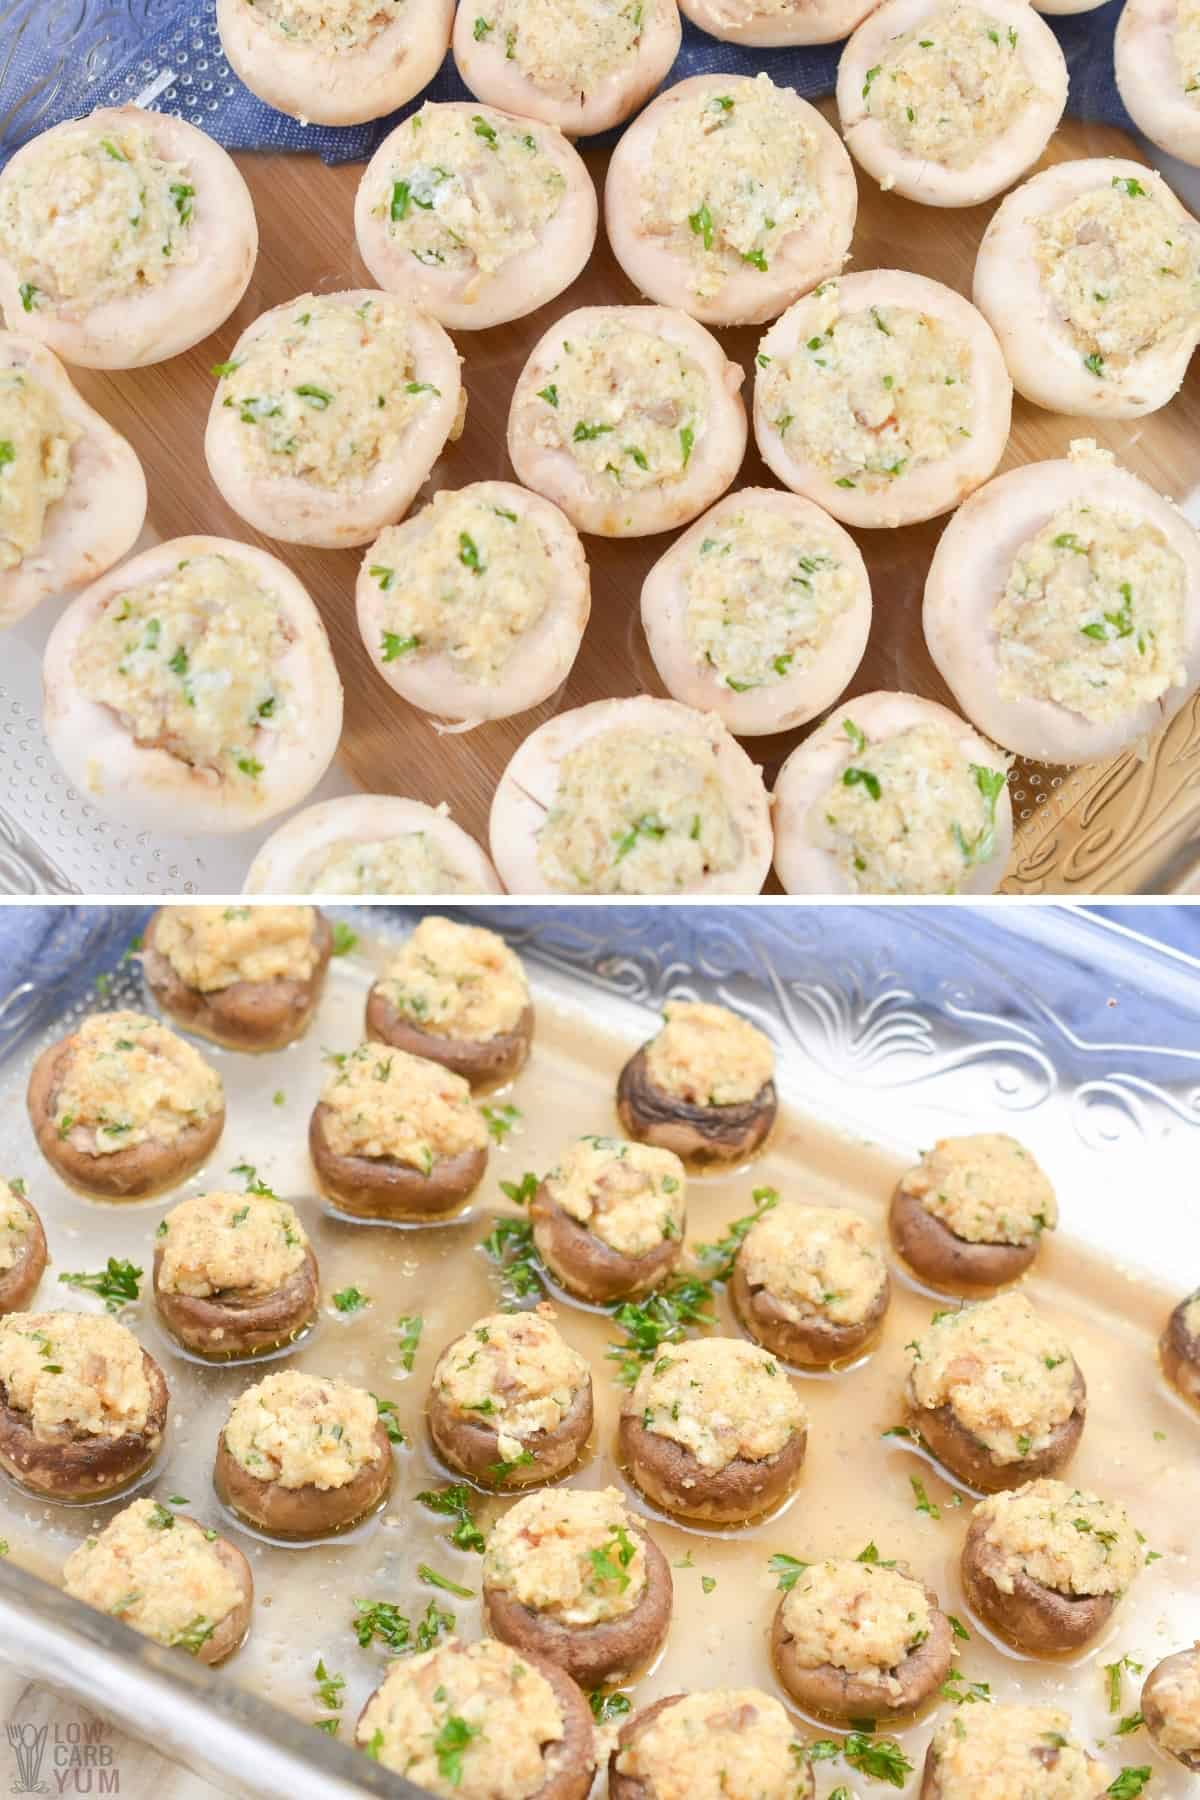 stuffed mushrooms before and after baking